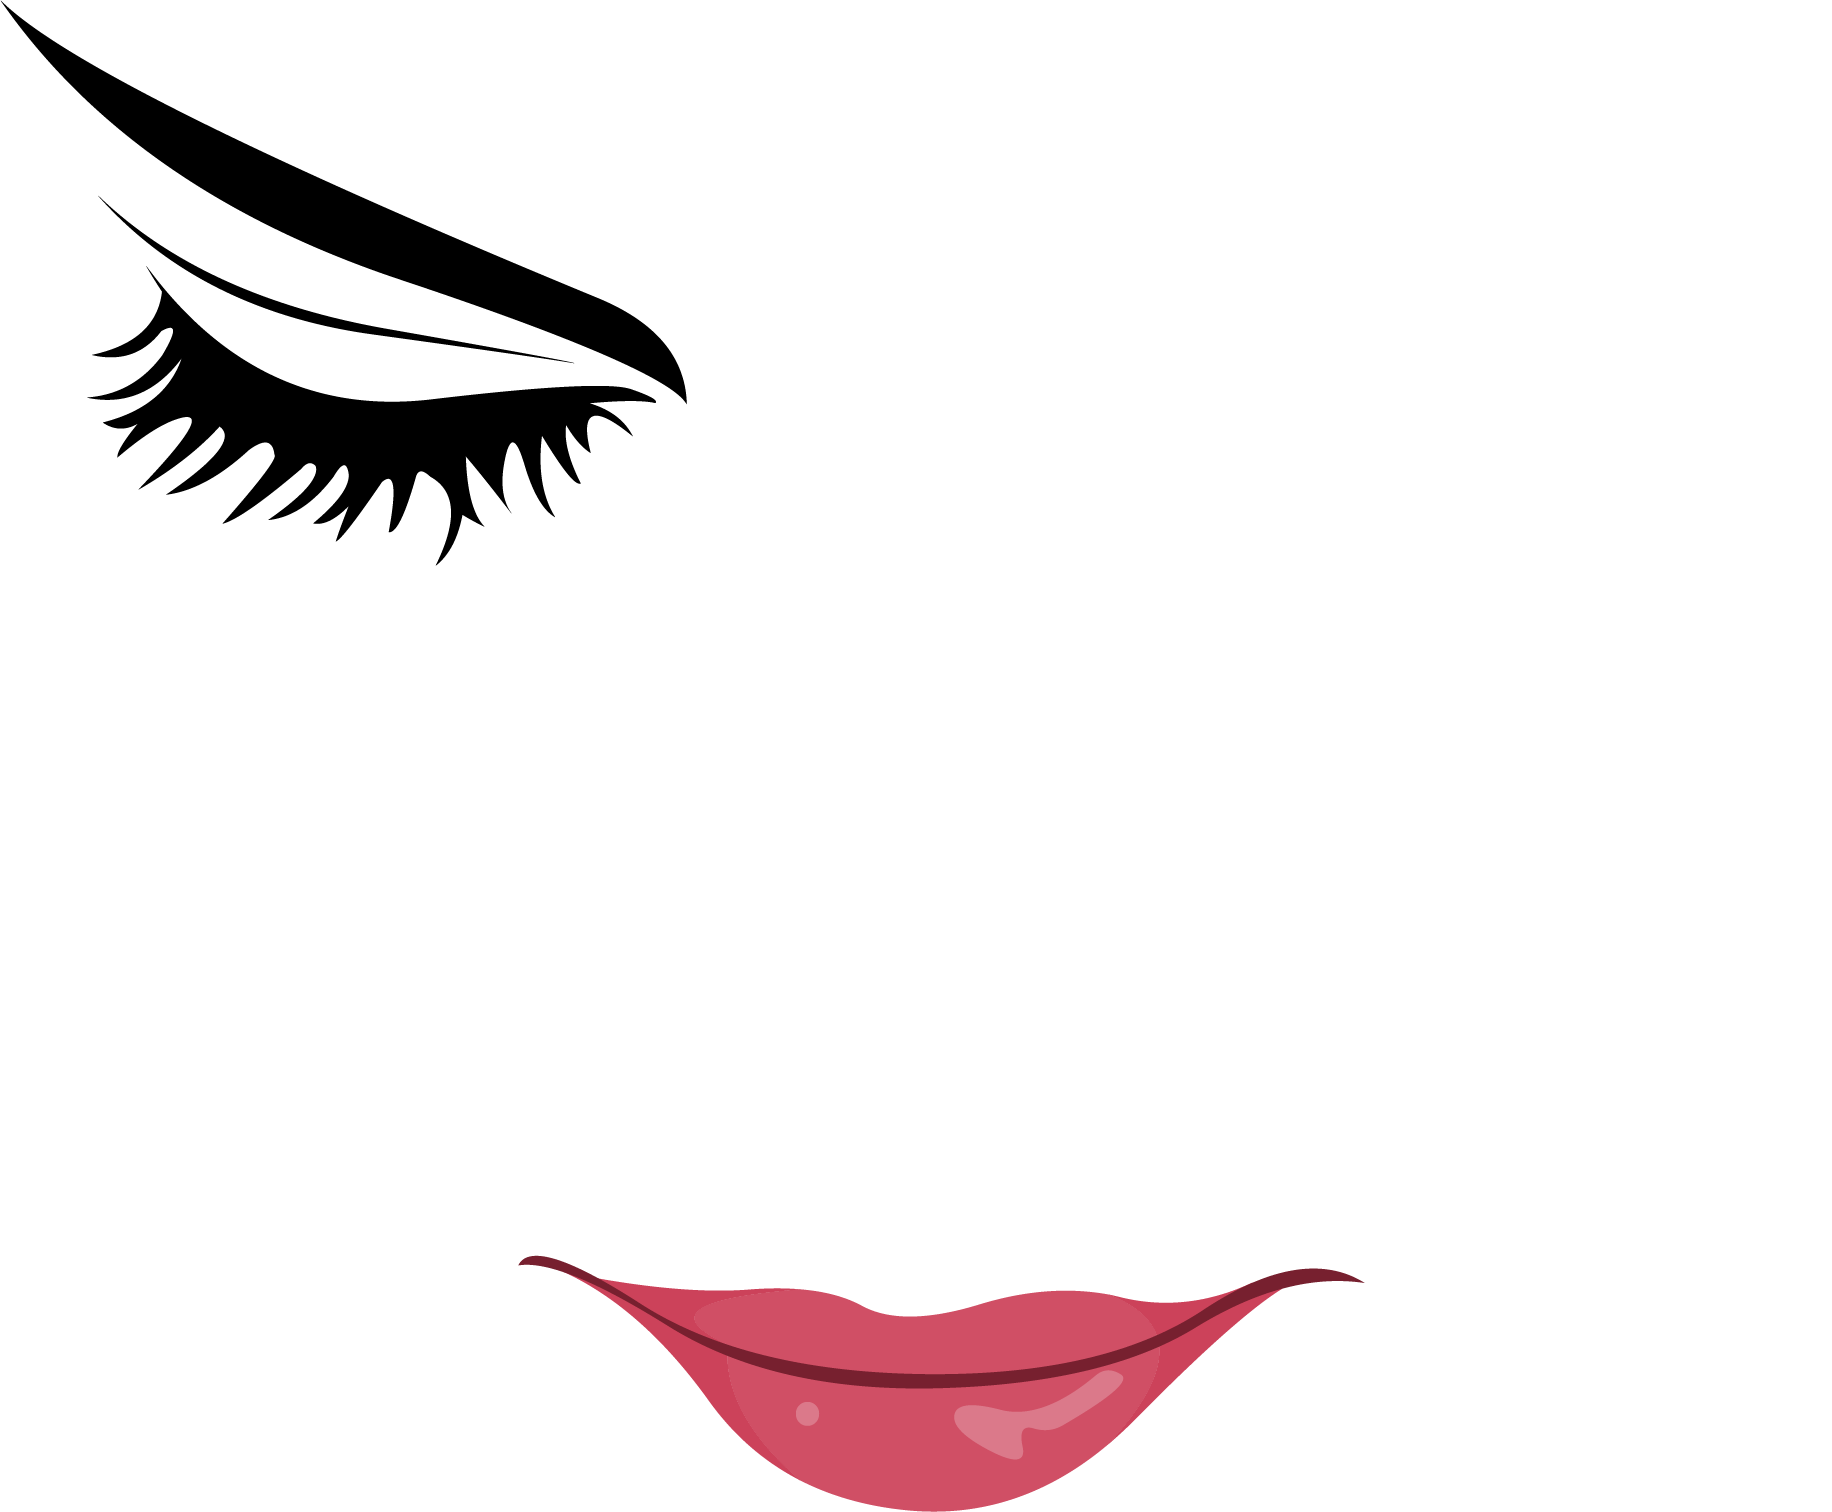 Eyebrow clipart painting. Woman with eyes closed